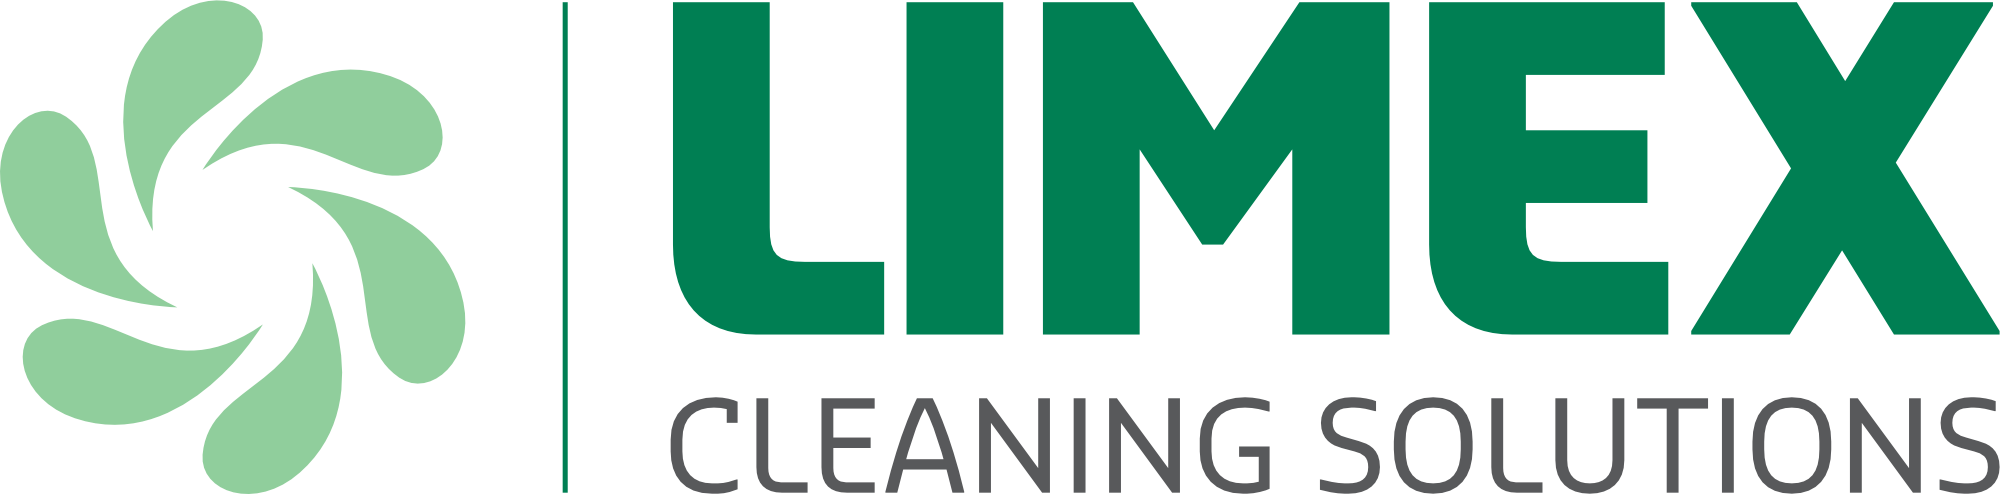 Limex Cleaning Solutions